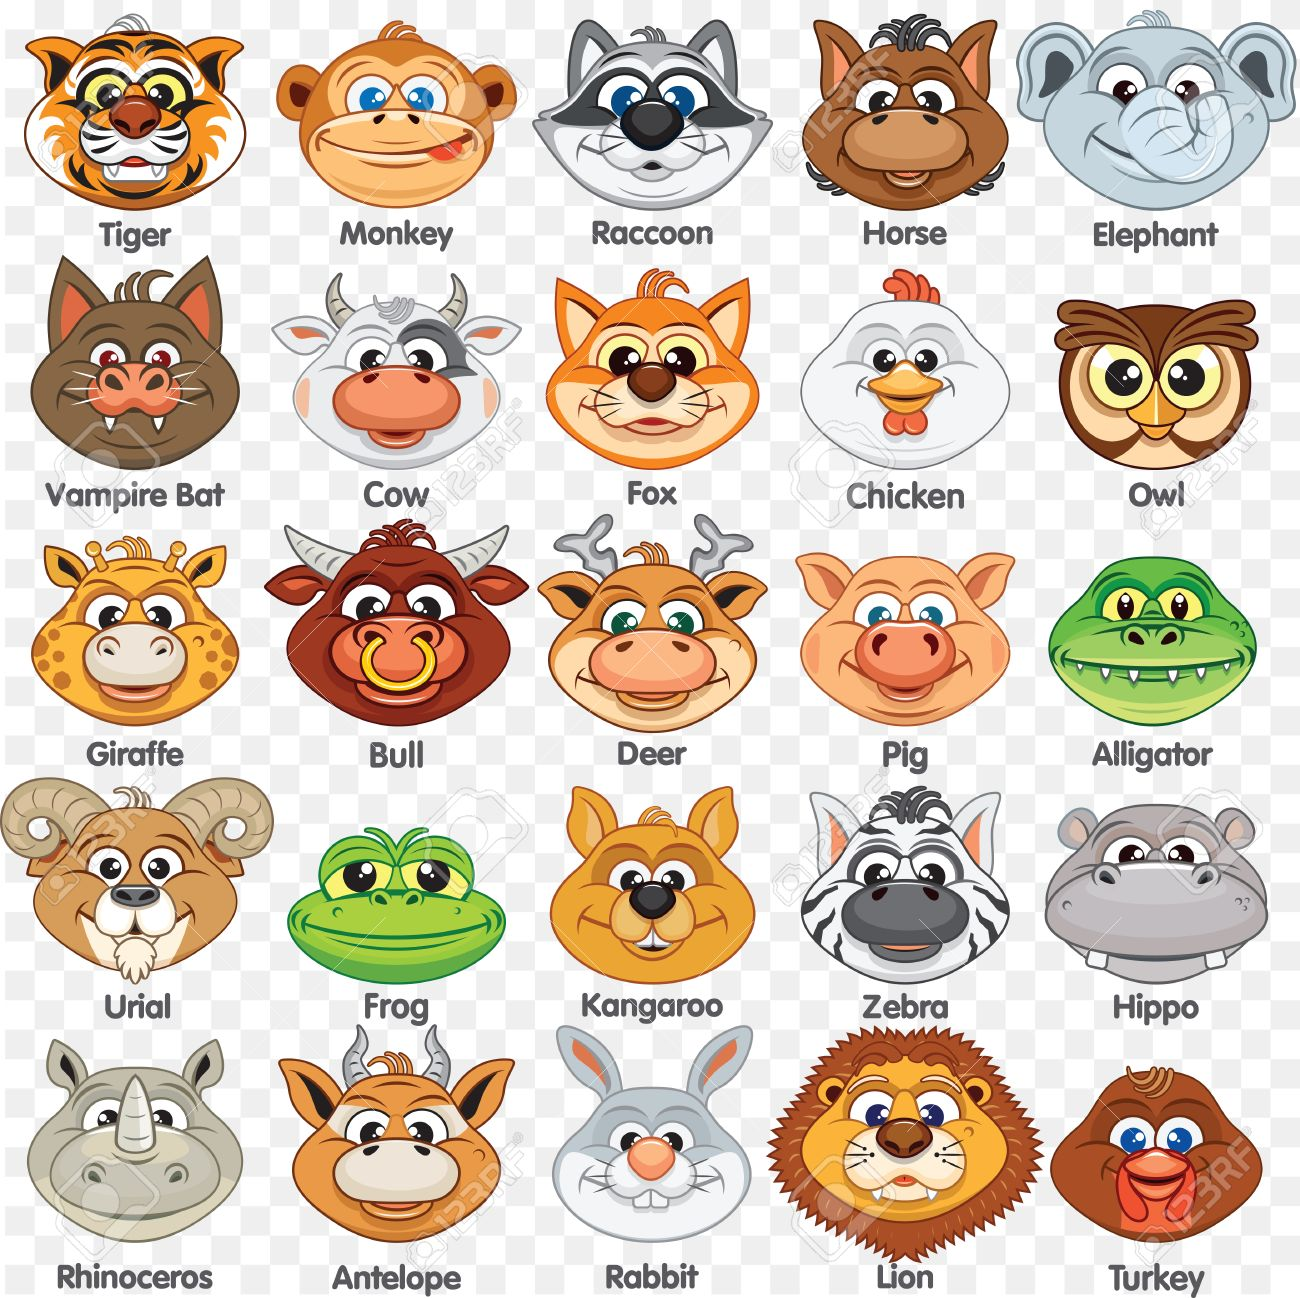 Printable Animal Masks Template  Cutout Paper Mask of Cute Animals